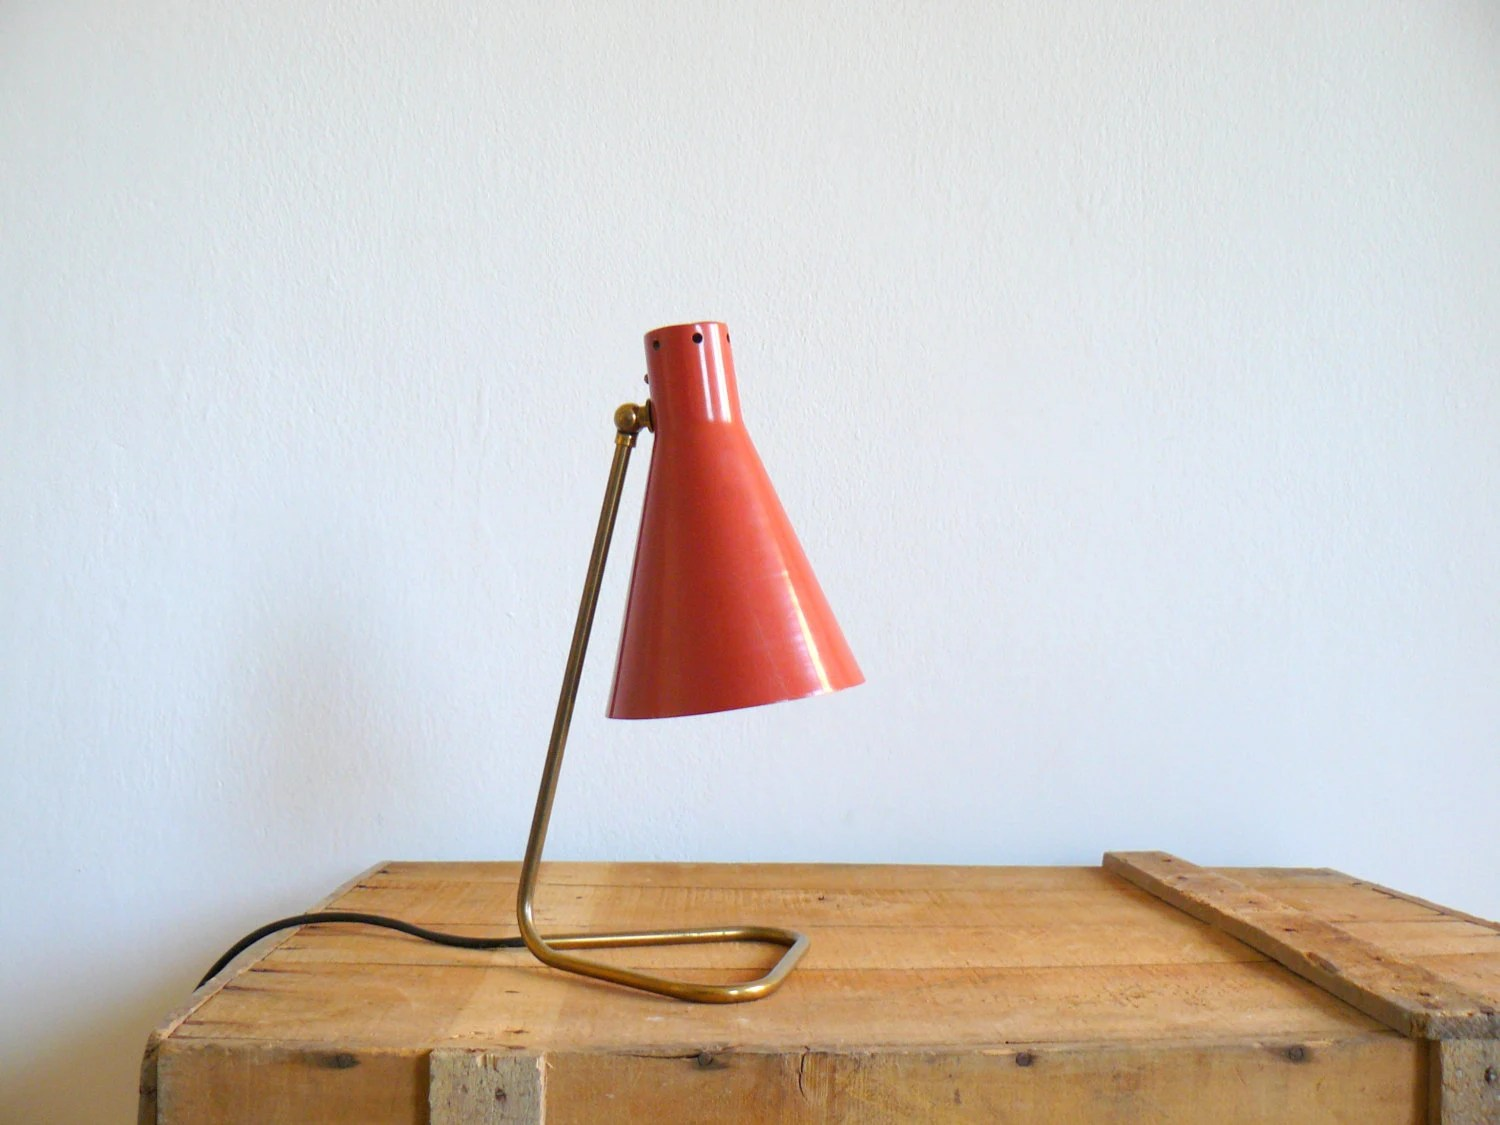 Vintage 60s atomic desk lamp. Lamp with coral red lampshade and brass metal neck